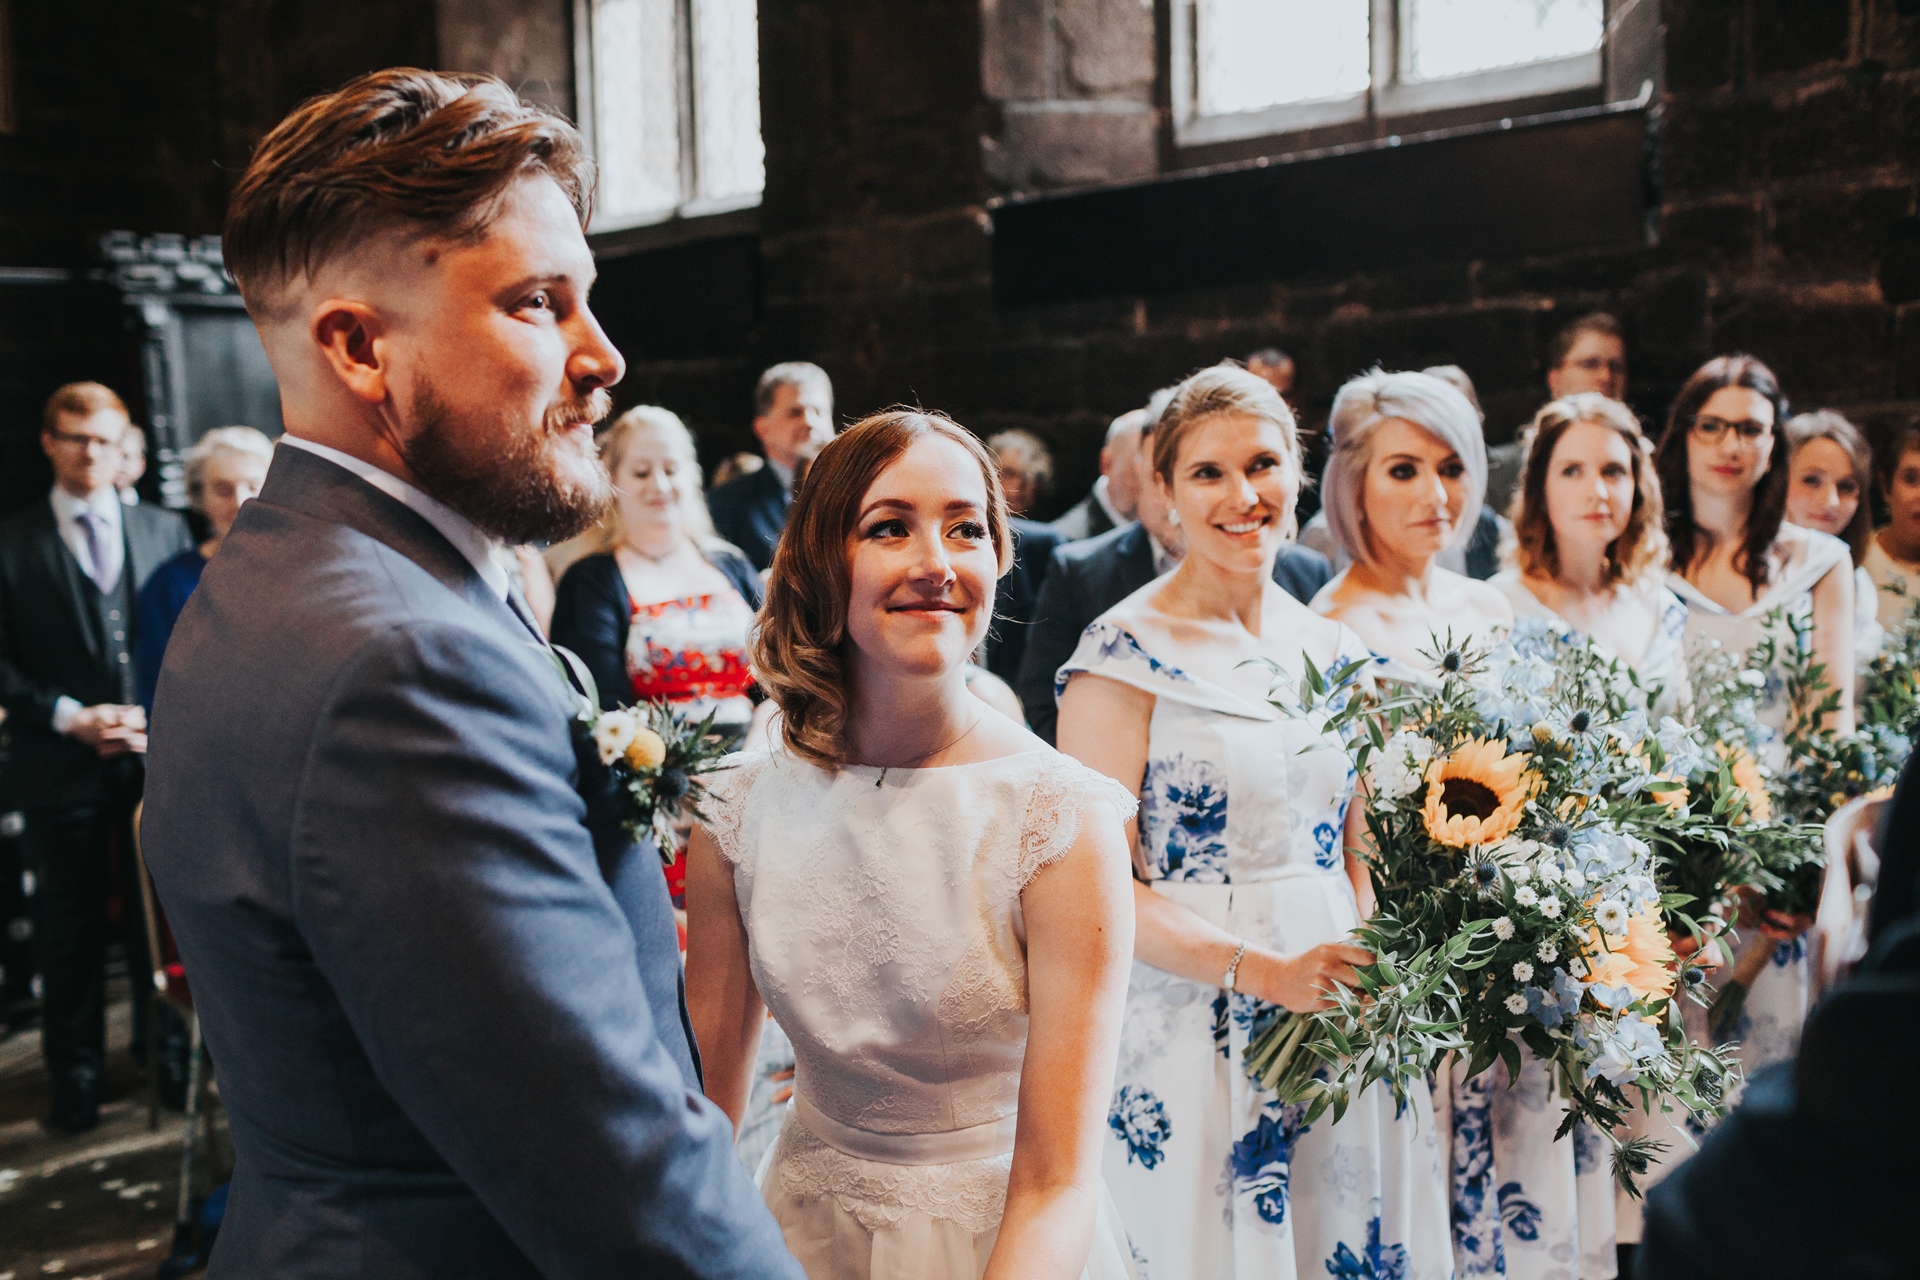 Bride and Groom stand together with a row of Bridesmaids behind them at Chatham Library Manchester.